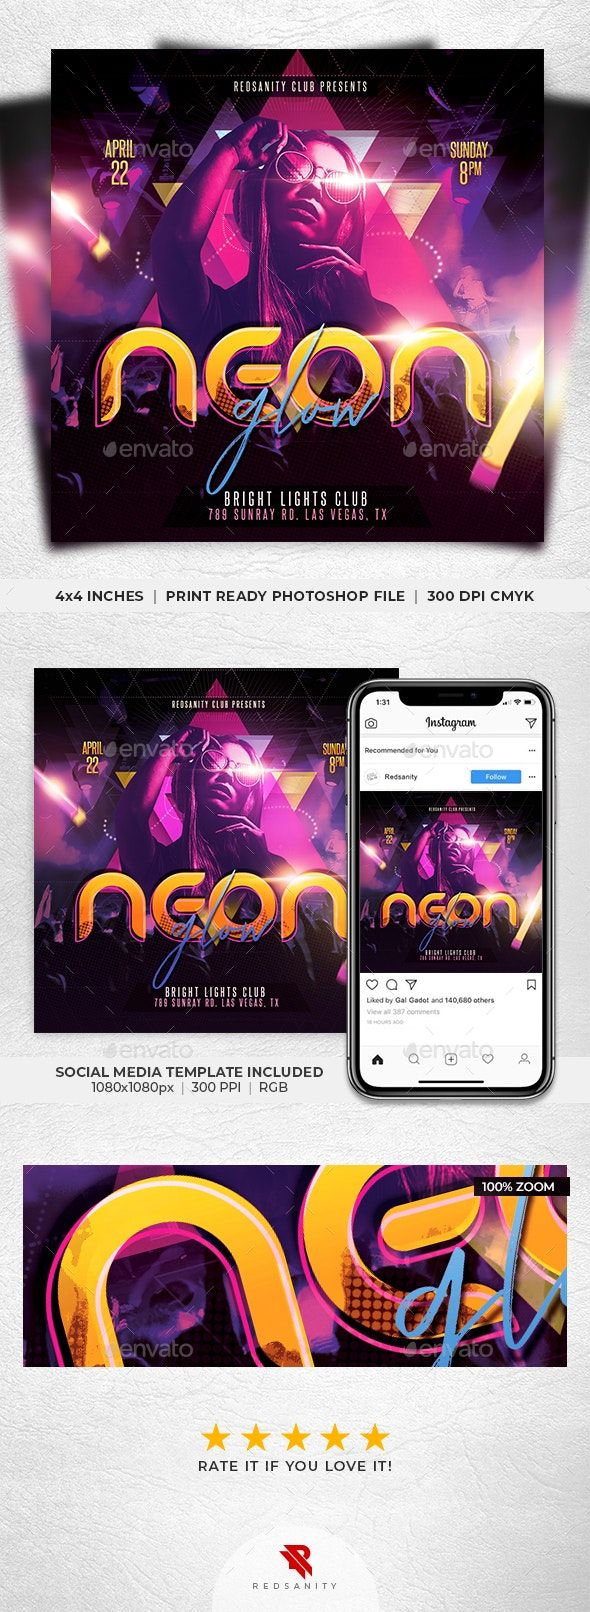 Pin by Maria Alena on Event Flyer Neon glow, Flyer